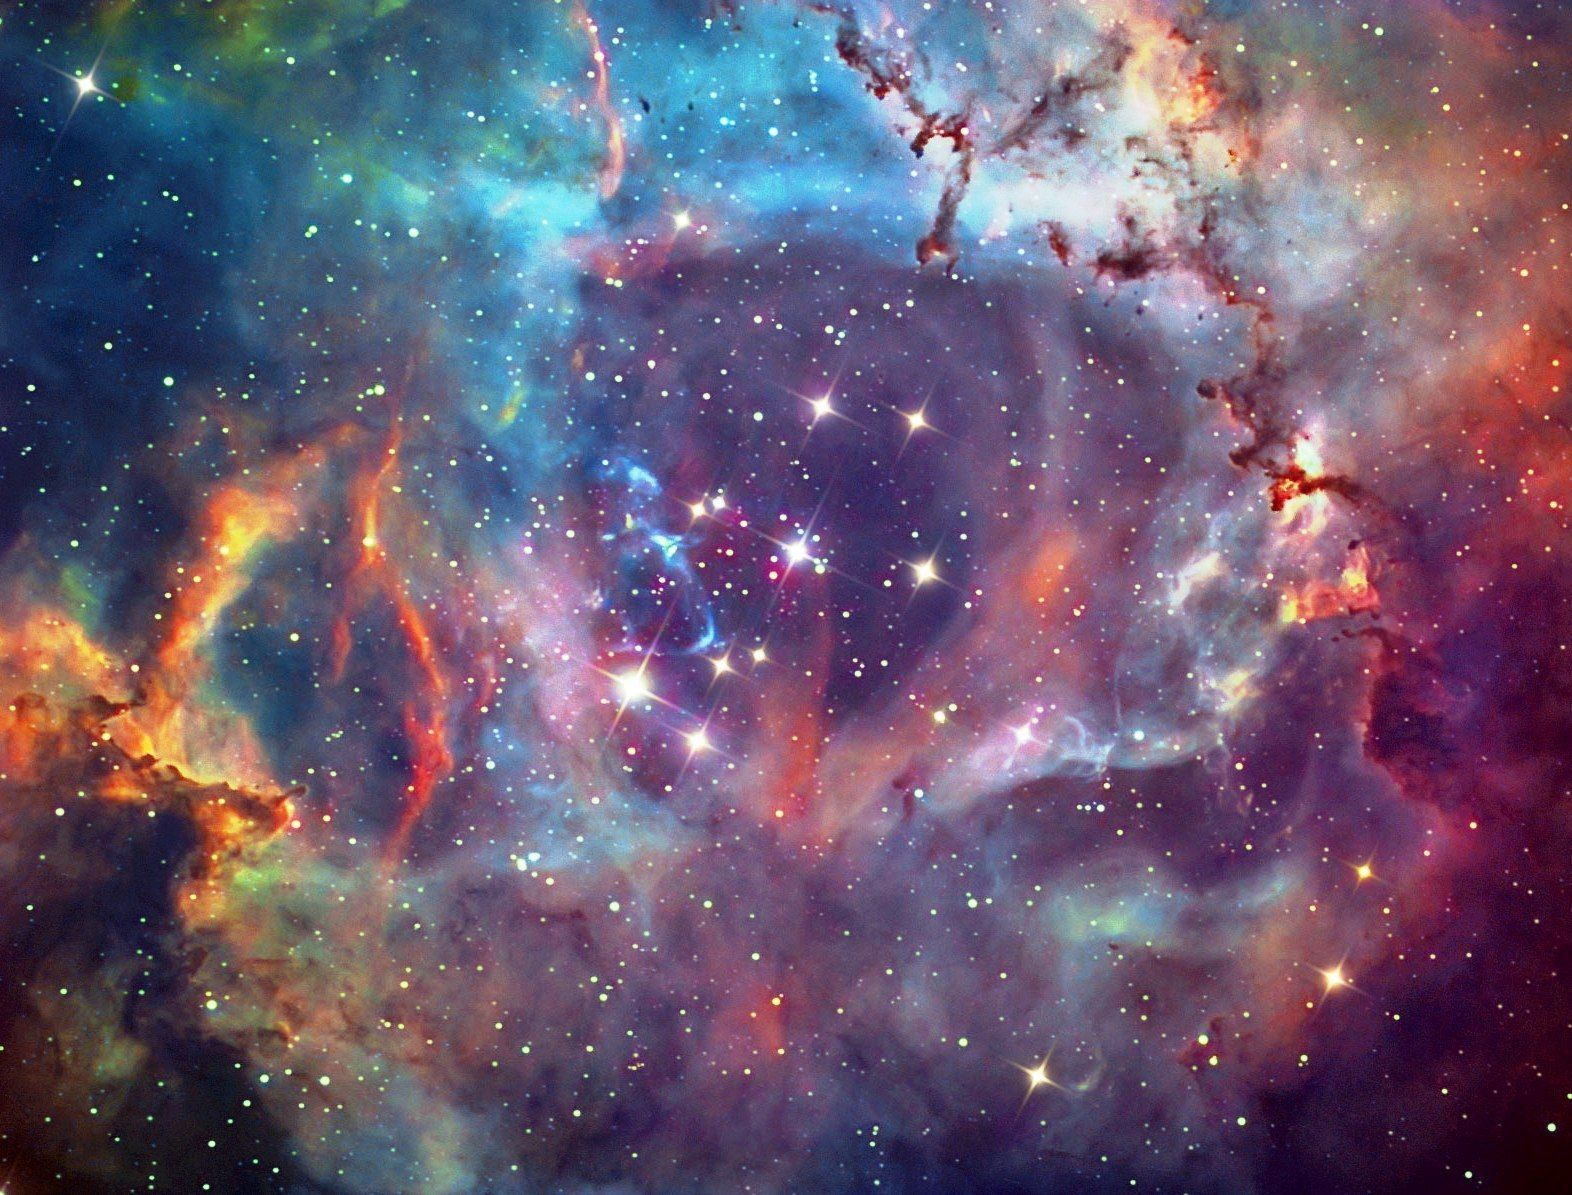 Galaxy Background Hd Wallpapers 3148 Amazing Wallpaperz Nebula Space Images Astronomy